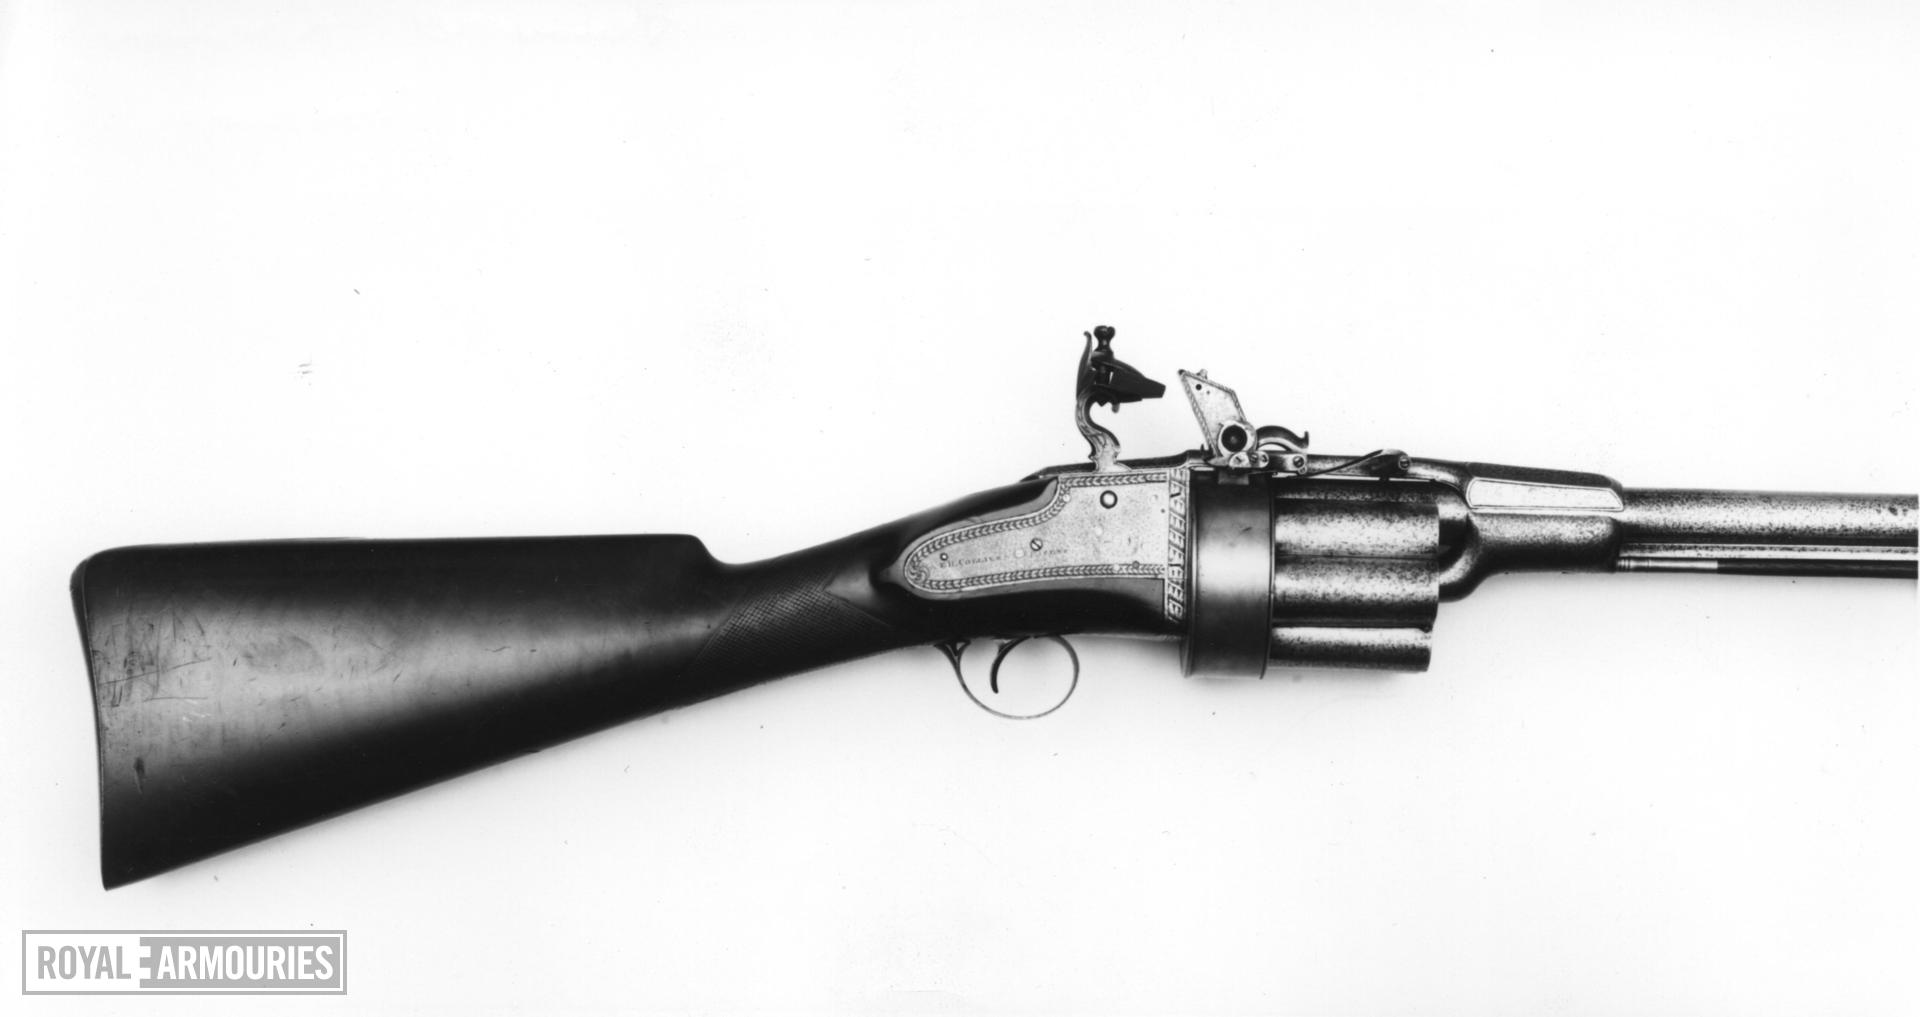 Flintlock revolver gun - By Collier Using Colliers's principle of a revolver with seven shots.